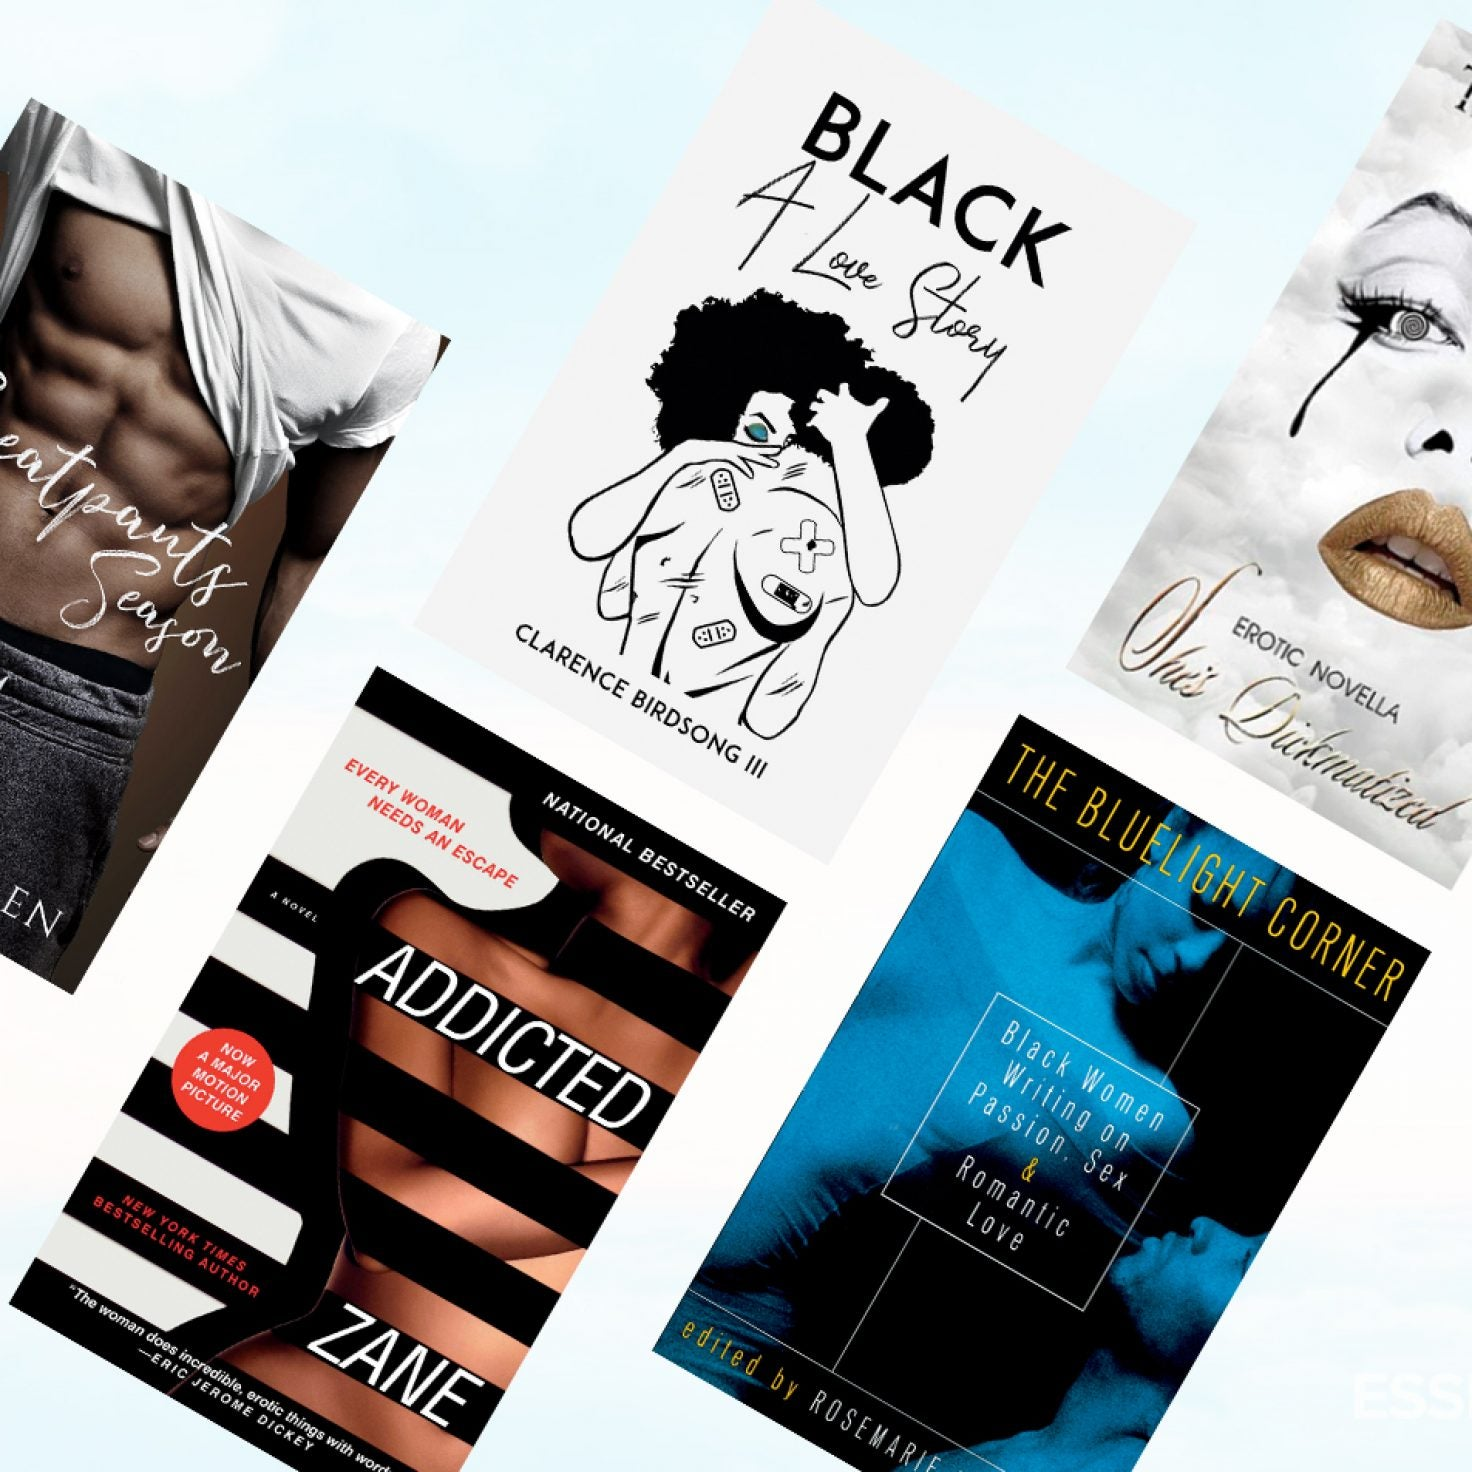 5 Sexy Bedtime Stories By Black Authors